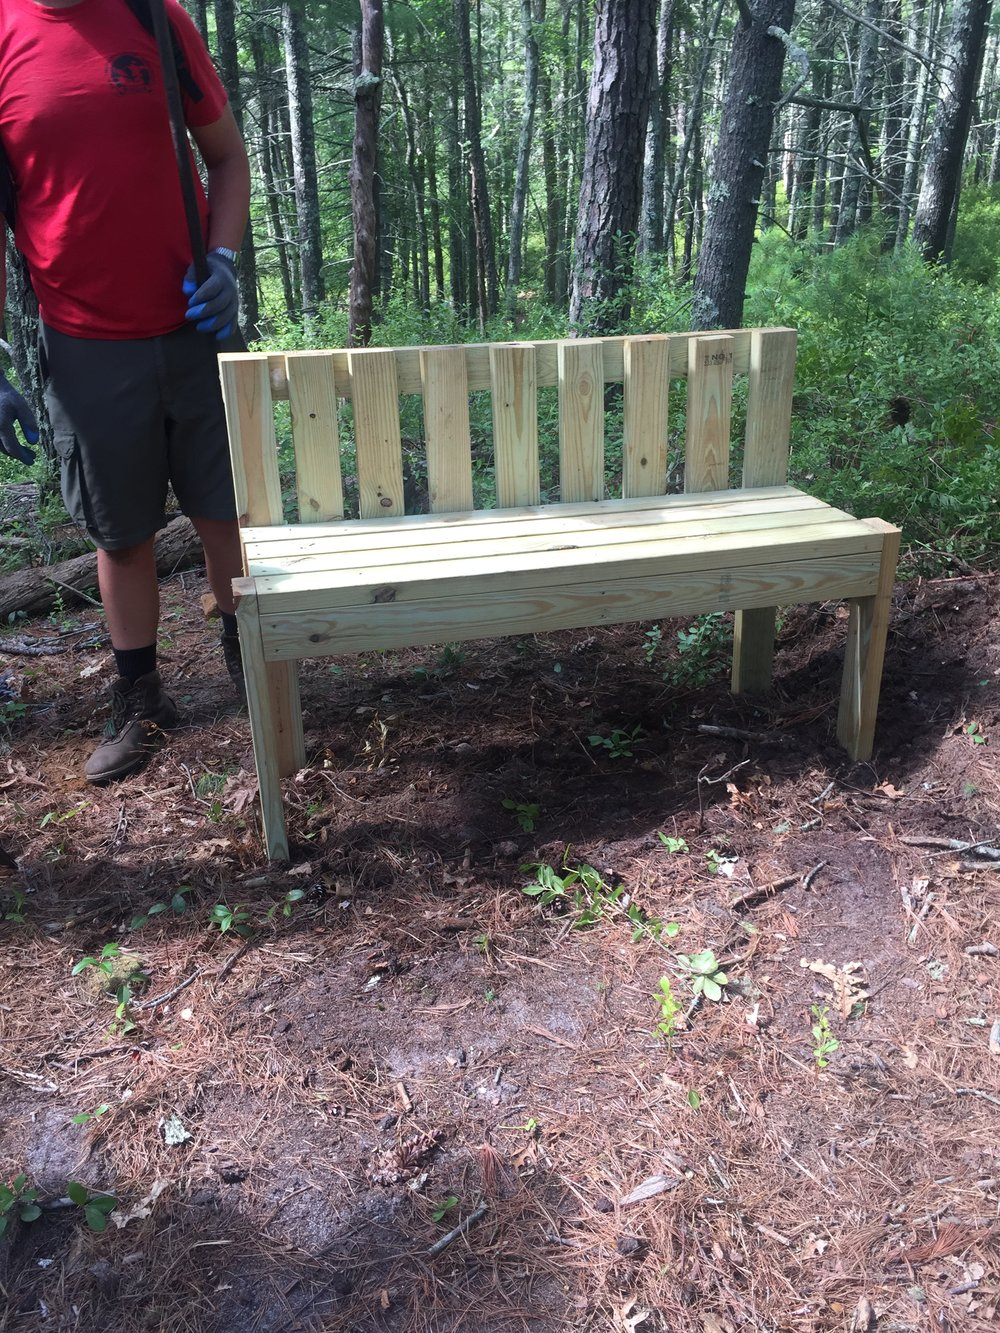 One of the four benches recently built by Plymouth Troop 1620.